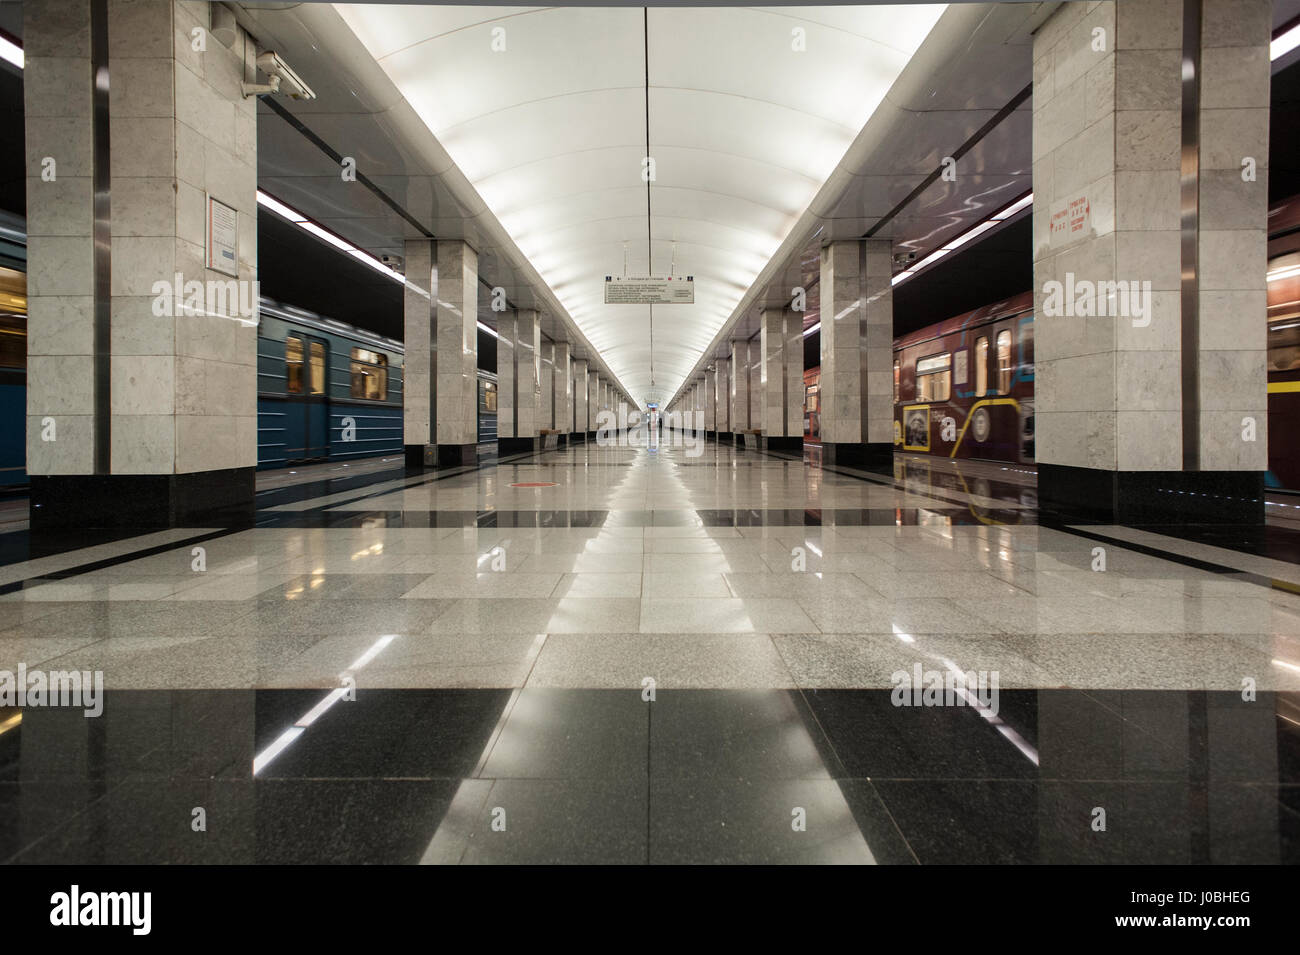 In Moscow, the opening of two metro stations is scheduled for a month on the Butovskaya line 35